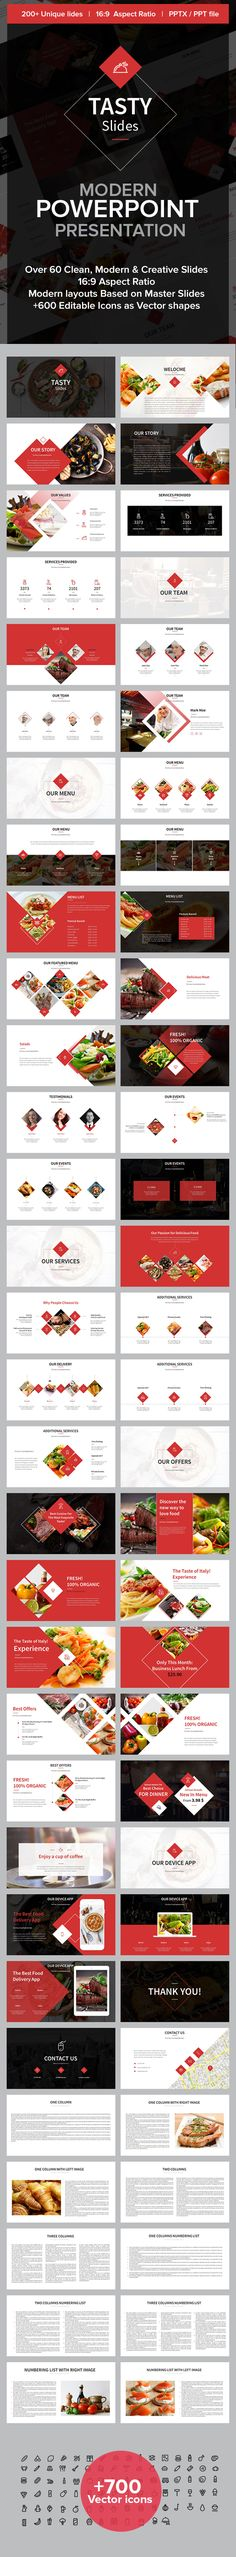 Tasty Slides Powerpoint Presentation Template • Only available here ➝ http://graphicriver.net/item/-tasty-slides-powerpoint-presentation/16395633?ref=pxcr